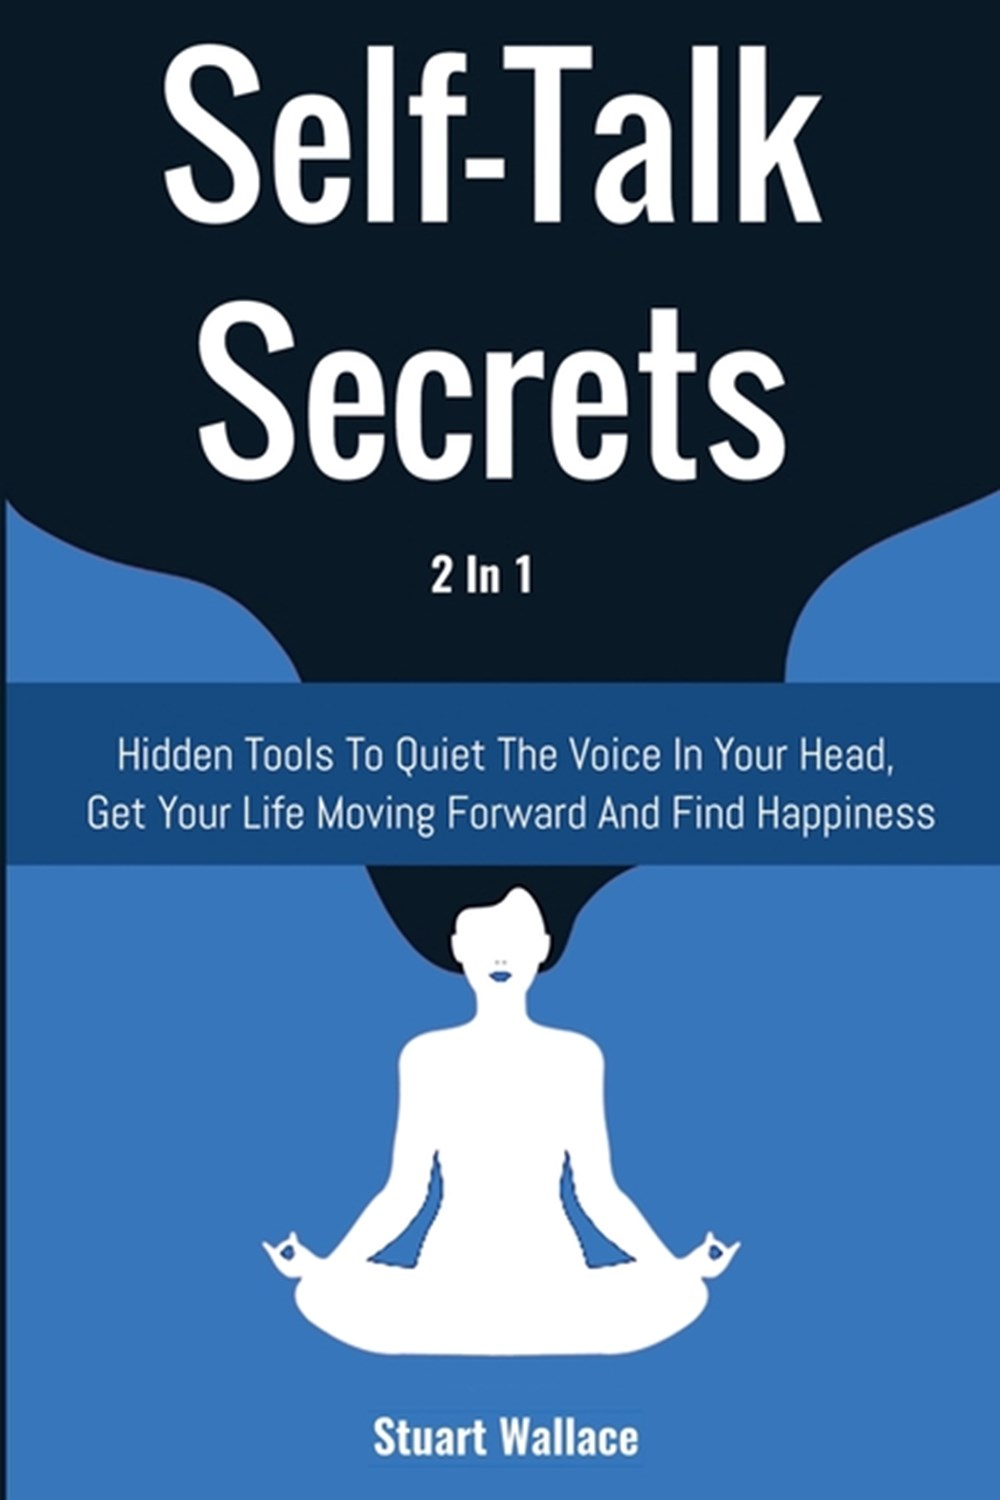 Self-Talk Secrets 2 In 1 Hidden Tools To Quiet The Voice In Your Head, Get Your Life Moving Forward